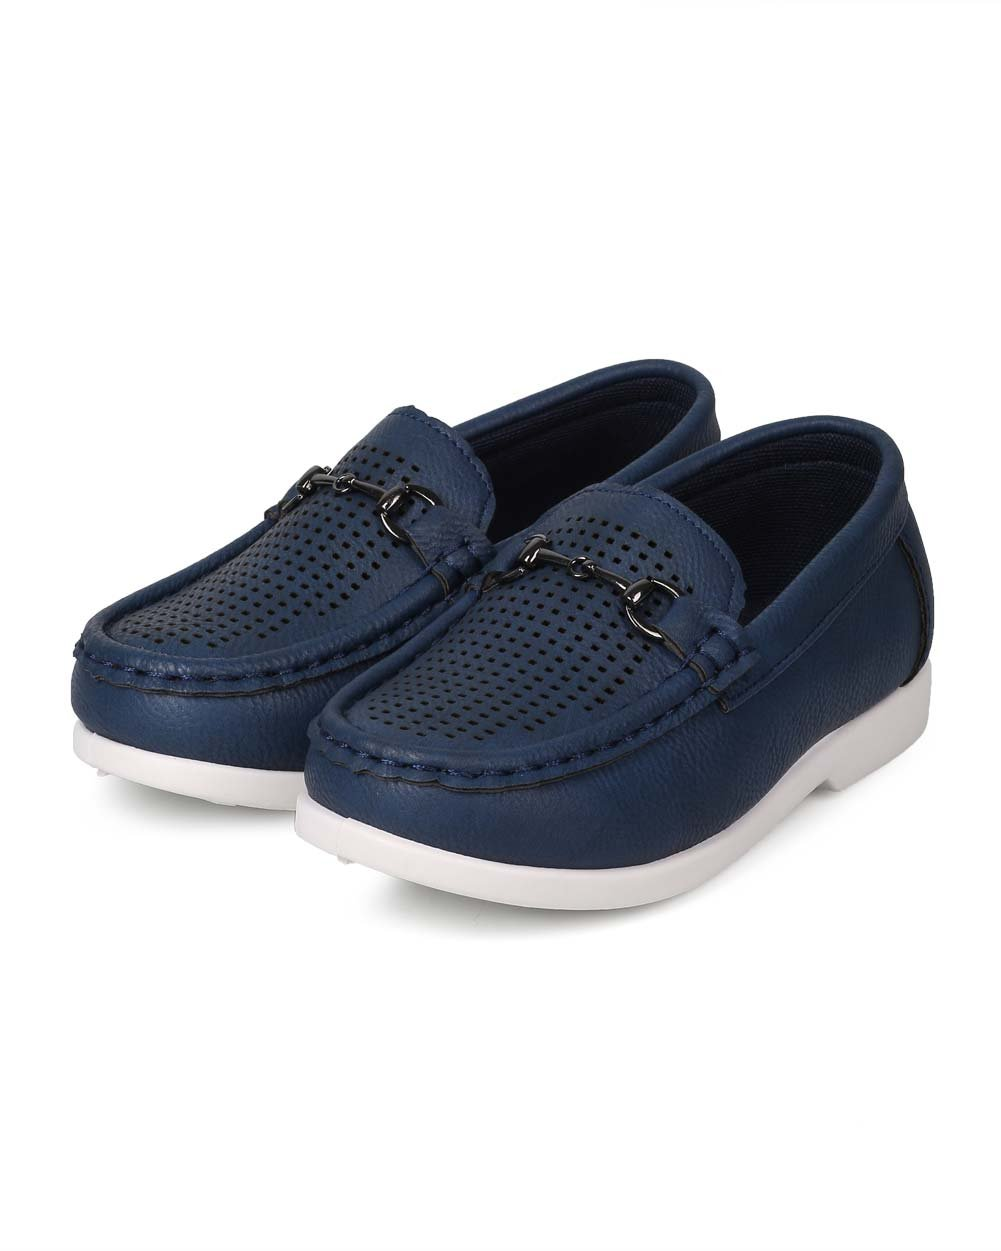 JELLYBEANS Leatherette Round Toe Perforated Chain Slip On Loafer (Toddler) EJ47 - Navy (Size: Toddler 5) by JELLYBEANS (Image #5)